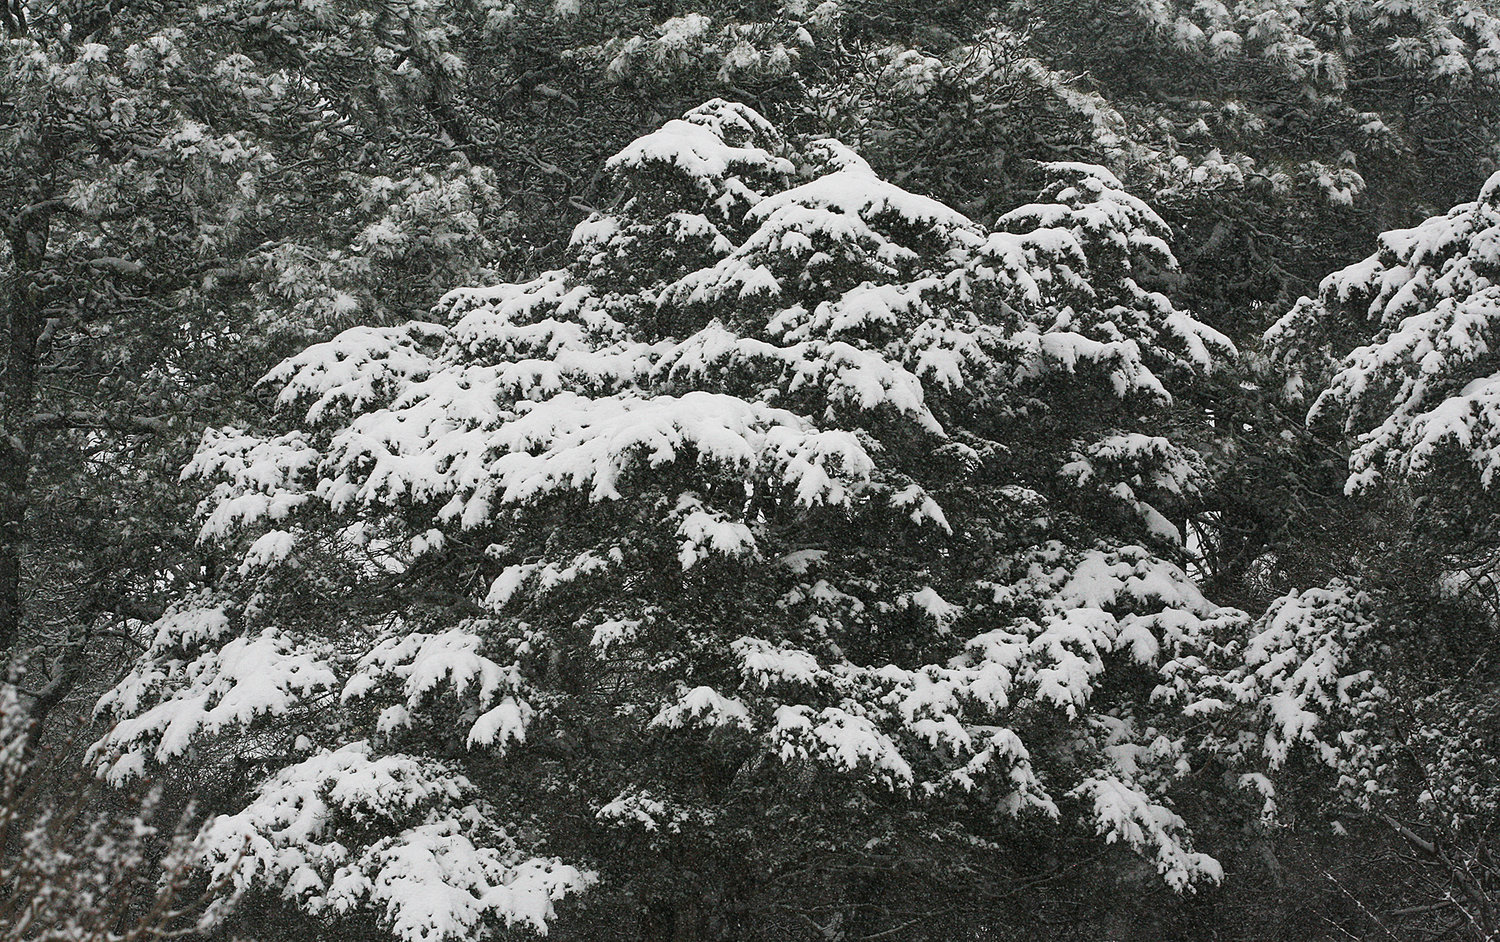 An evergreen in the snow.